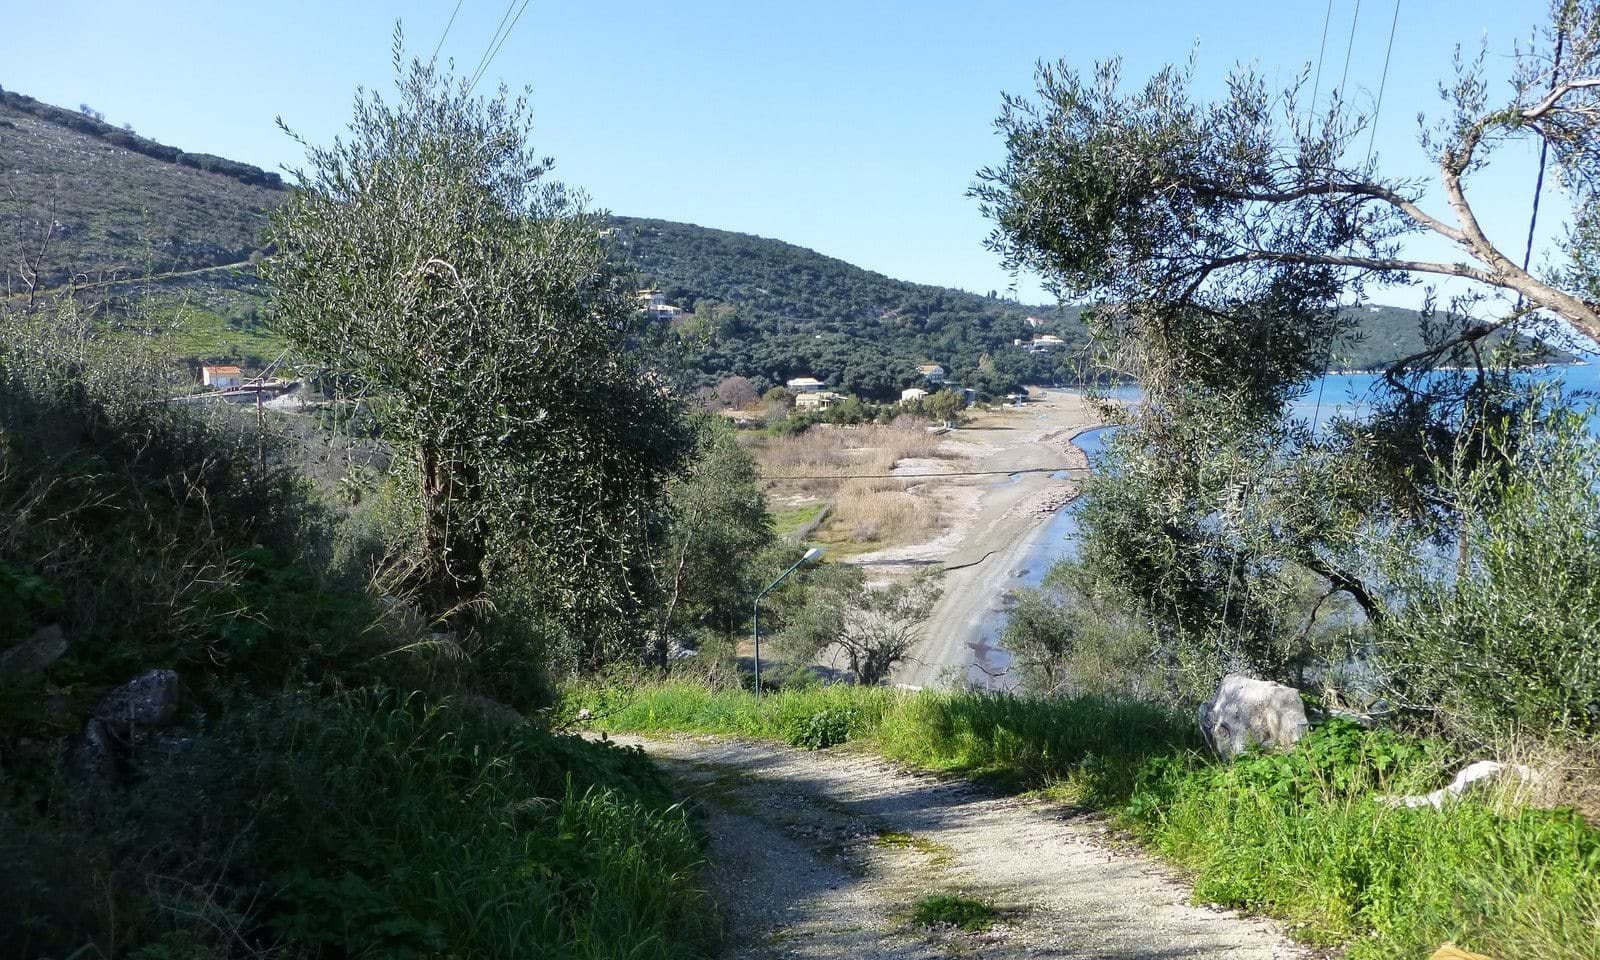 Property for sale in Corfu